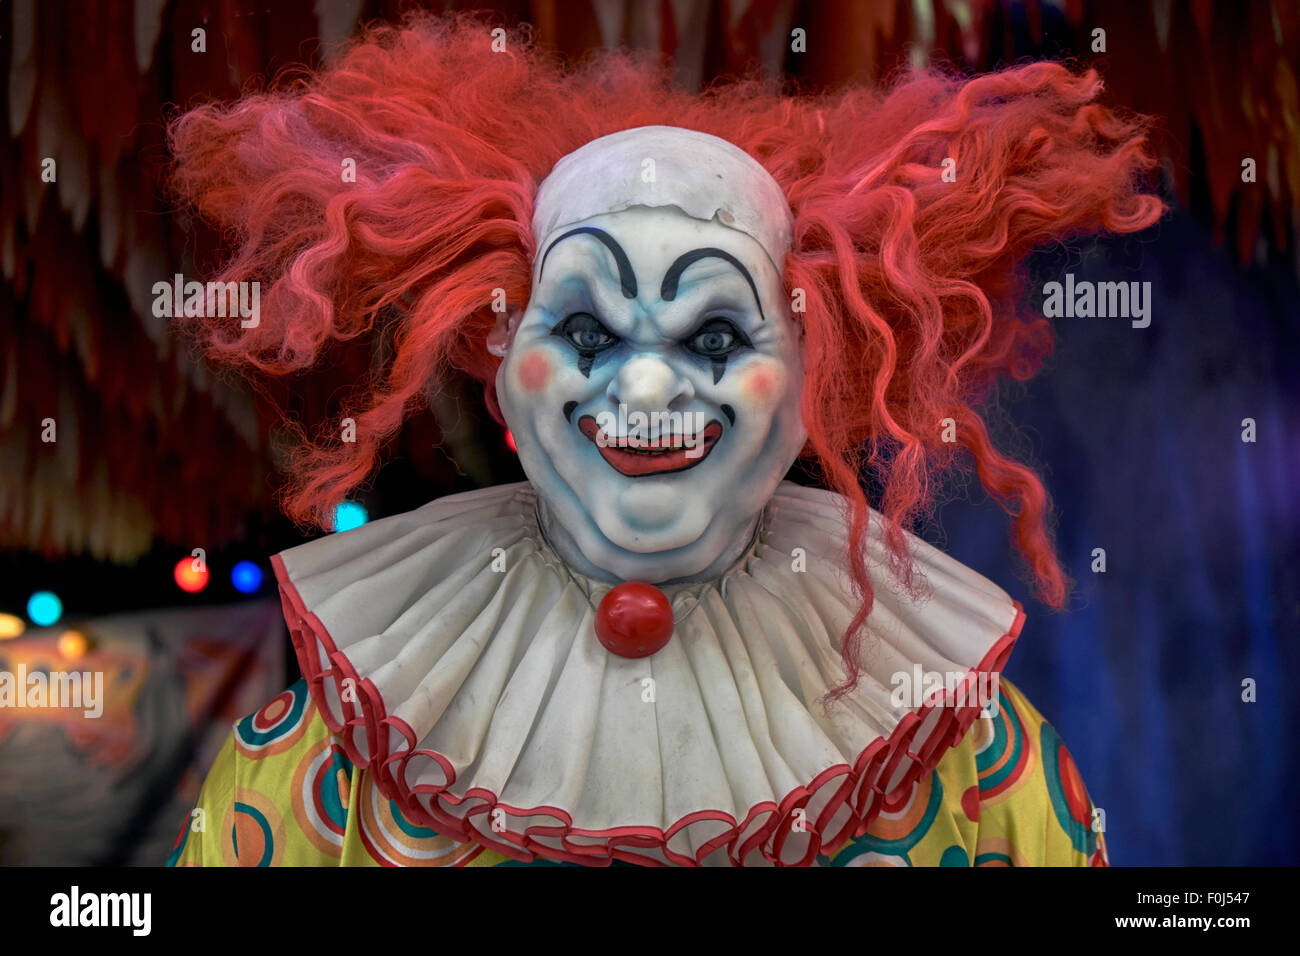 When You See It Scary Clown: Clown Face Scary Stock Photos & Clown Face Scary Stock